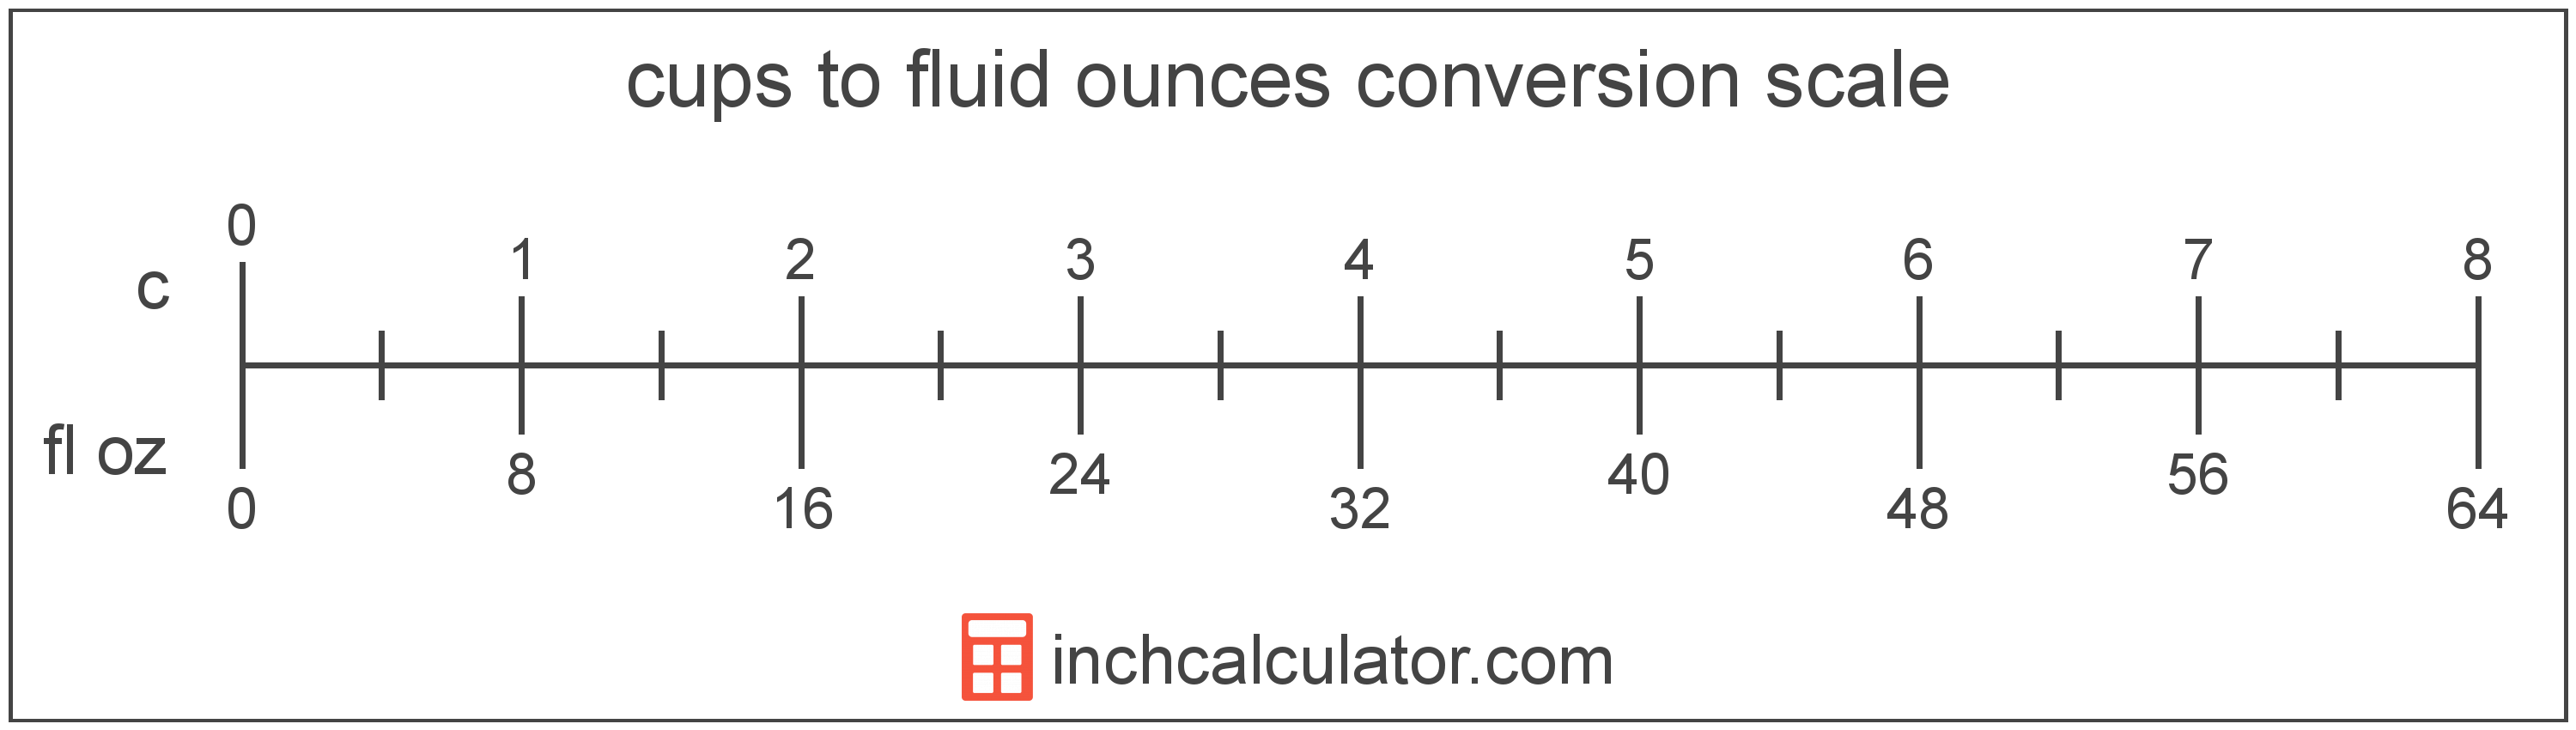 conversion scale showing cups and equivalent fluid ounces volume values